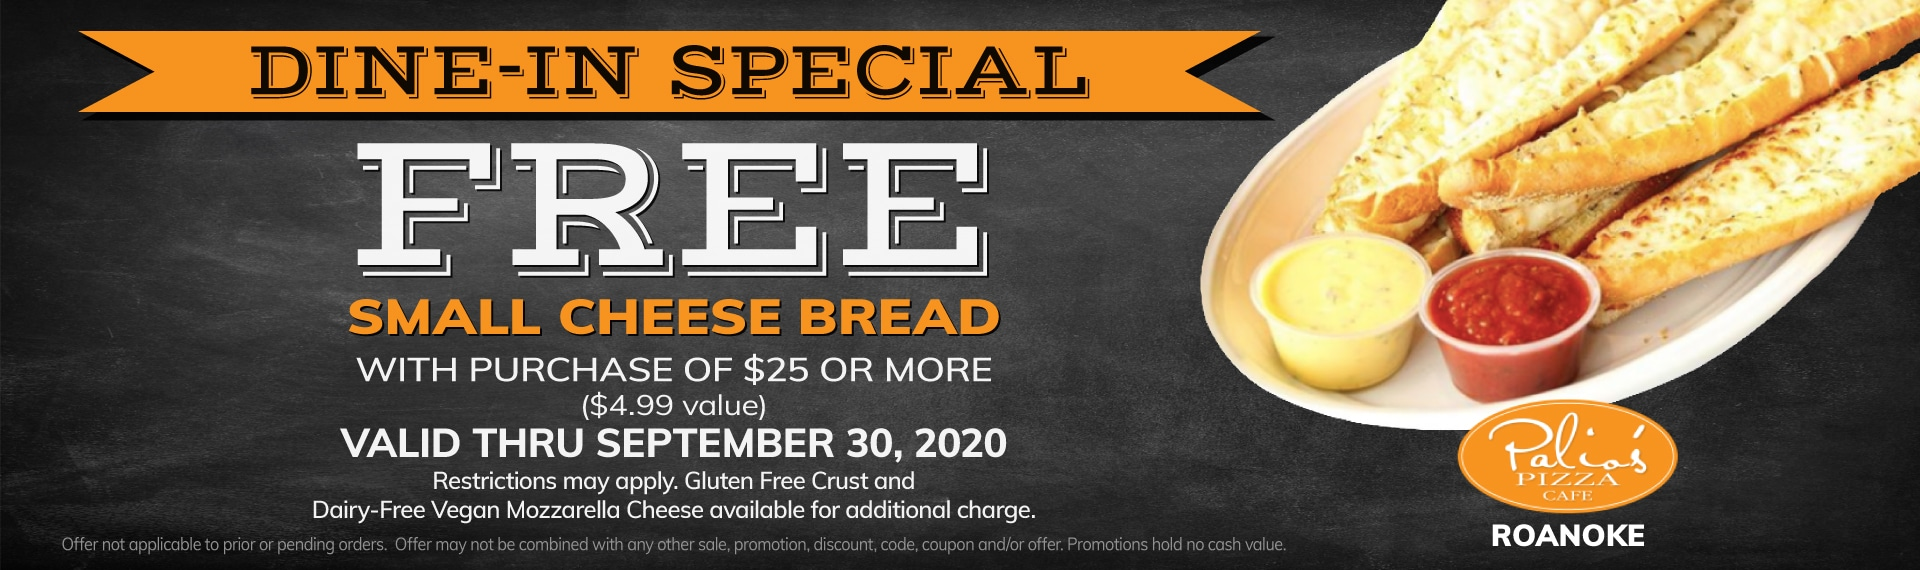 Dine-In Special - Free Small Cheese Bread with Purchase of $25 or More